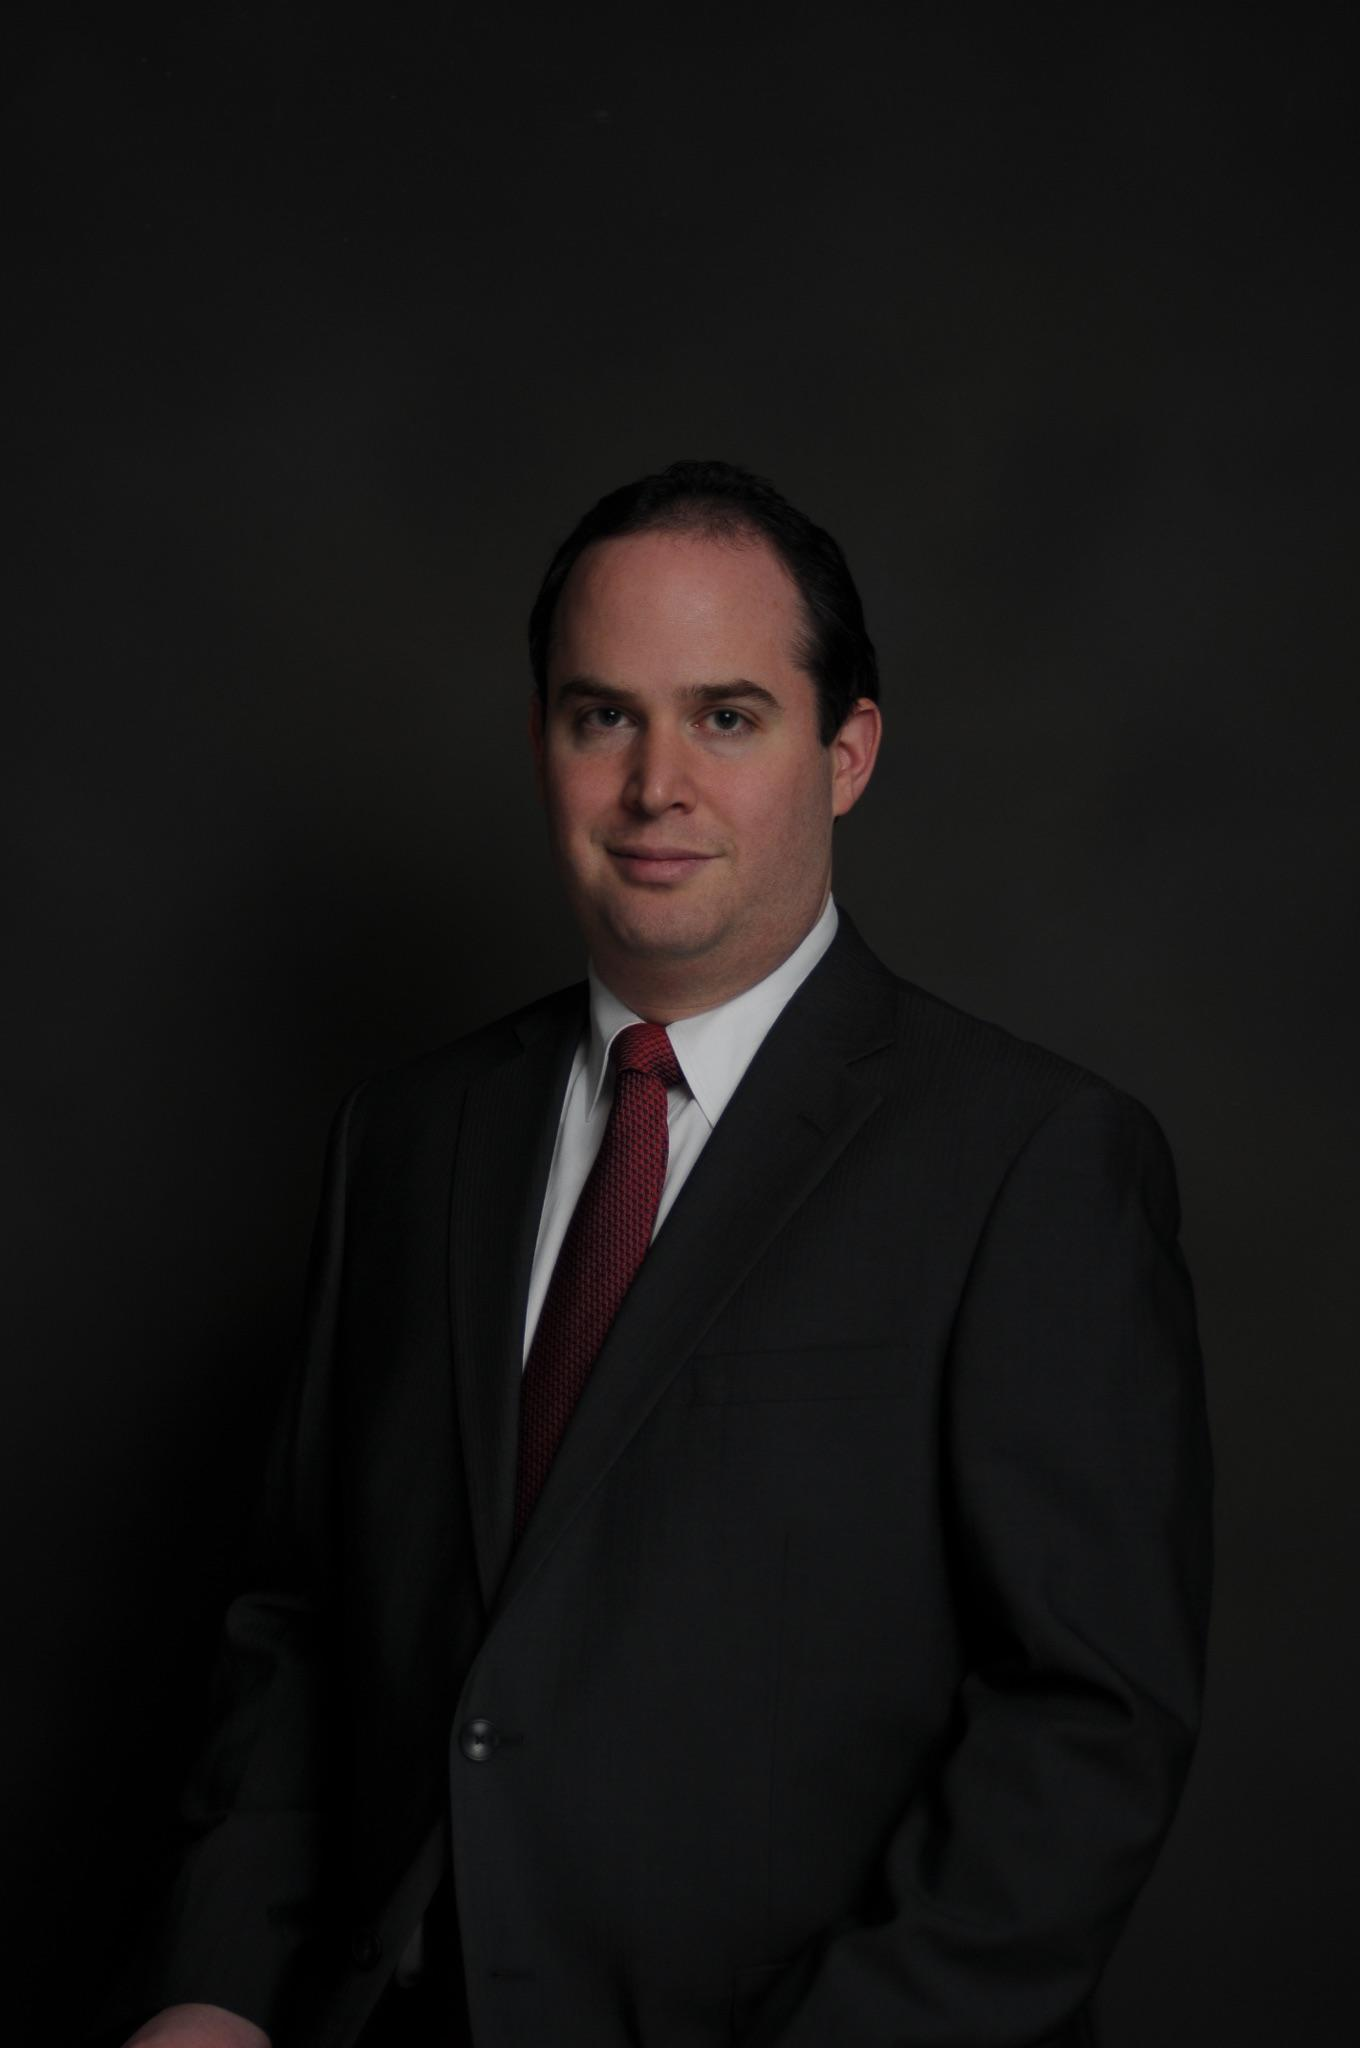 Orthopedic Surgeon in NY Garden City 11530 Adam Wilson, MD 1300 Franklin Ave Ste UL3A (516)747-8900